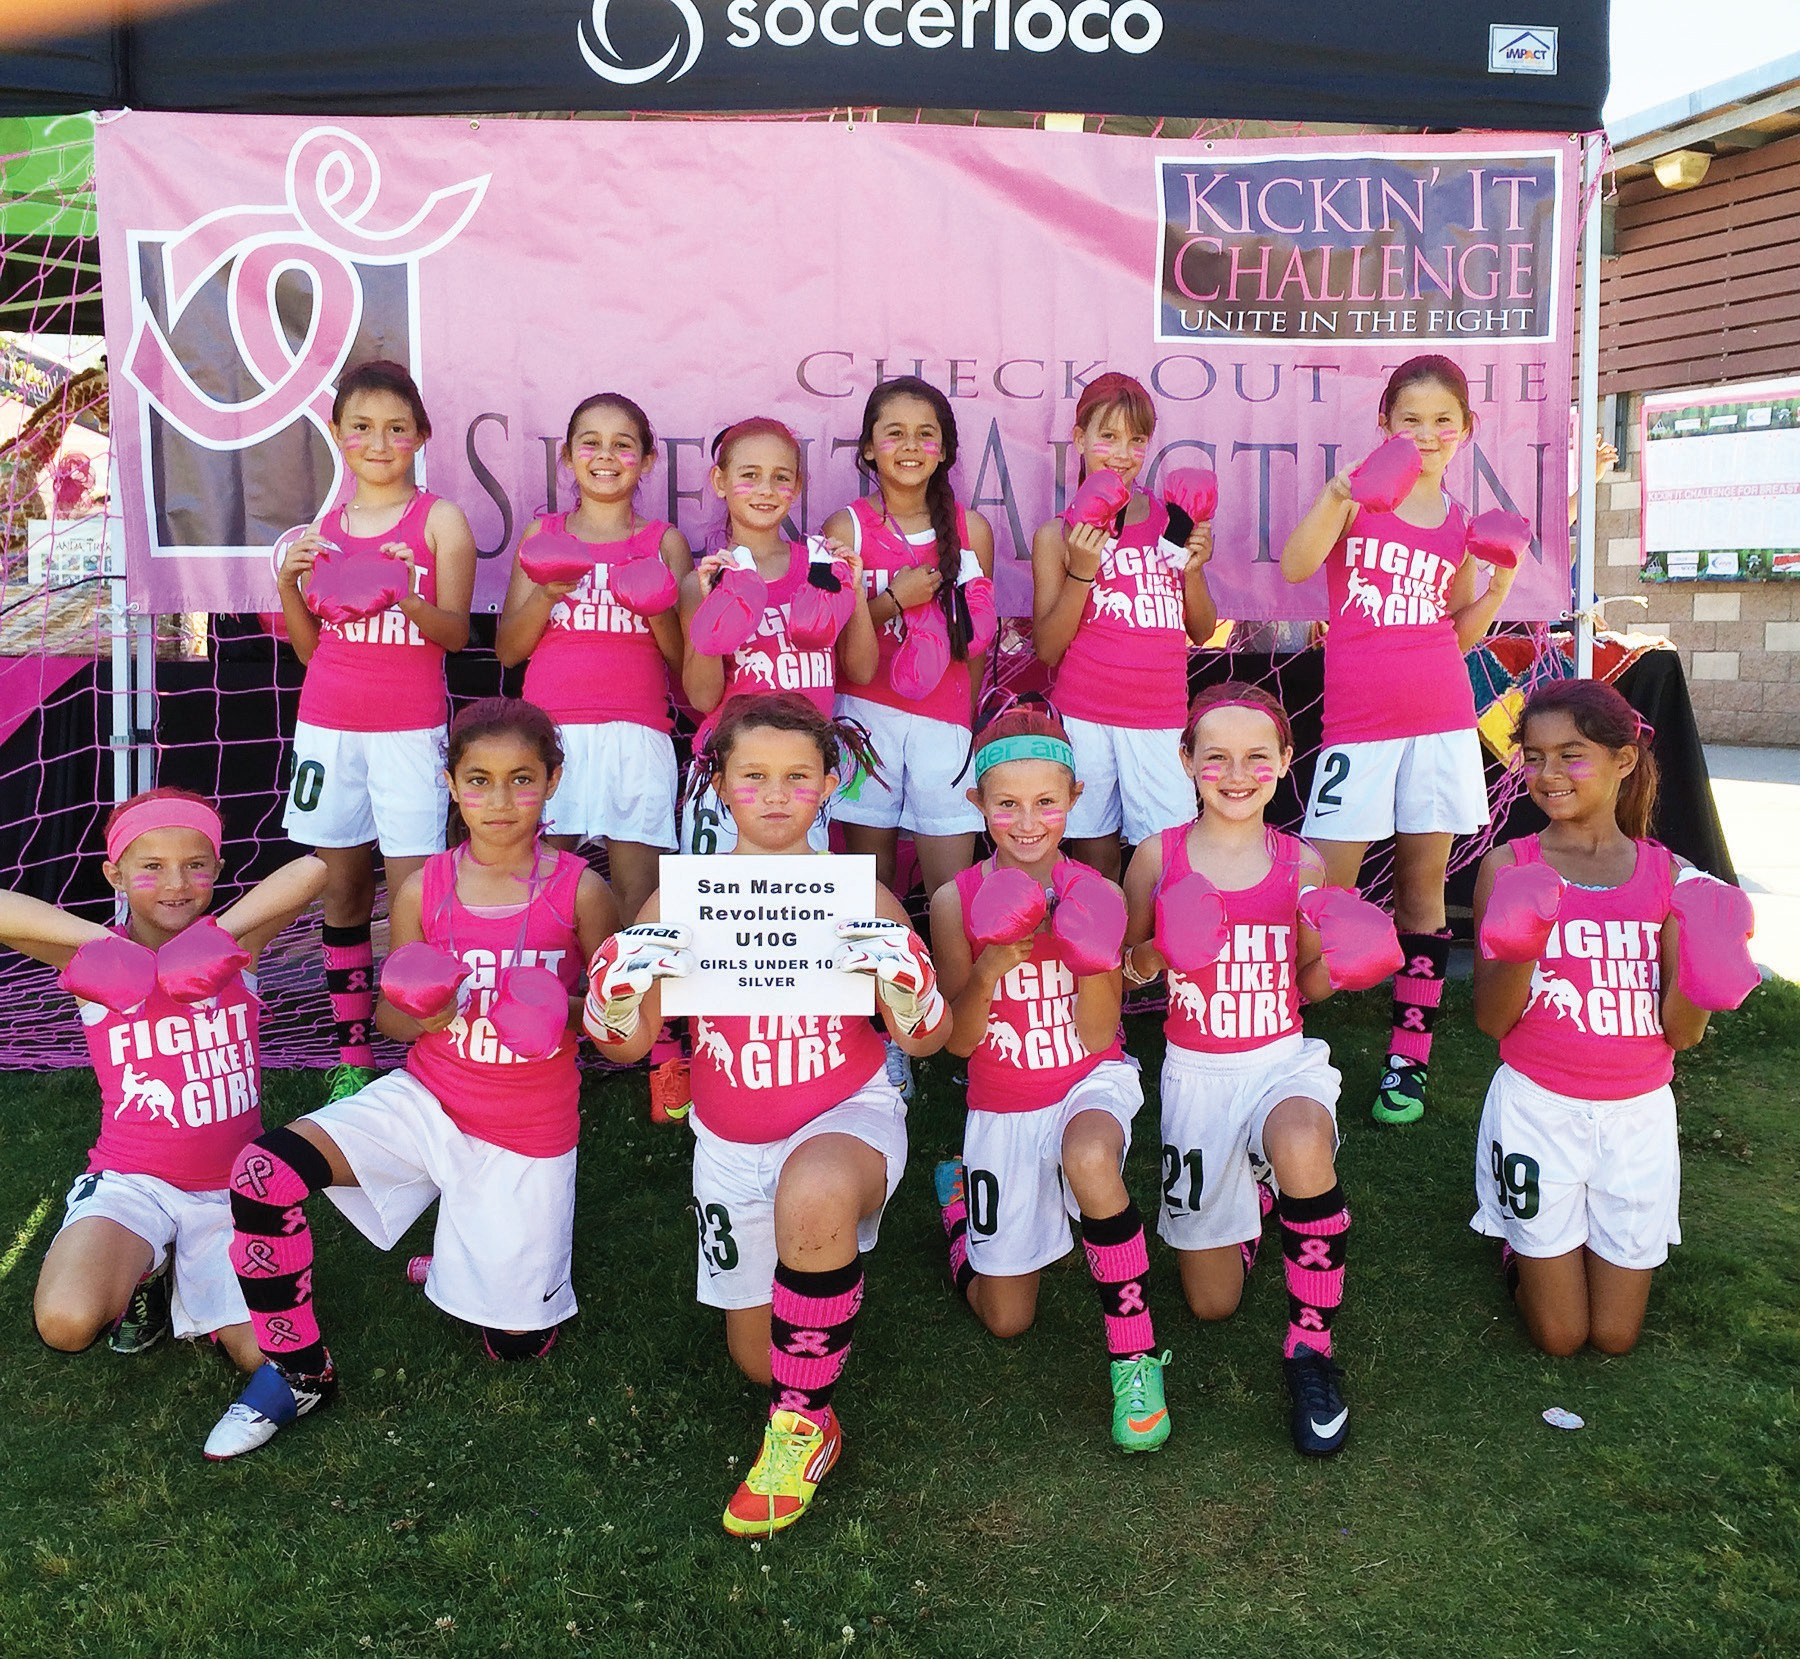 Young soccer players wear pink to show their support for battling breast cancer.